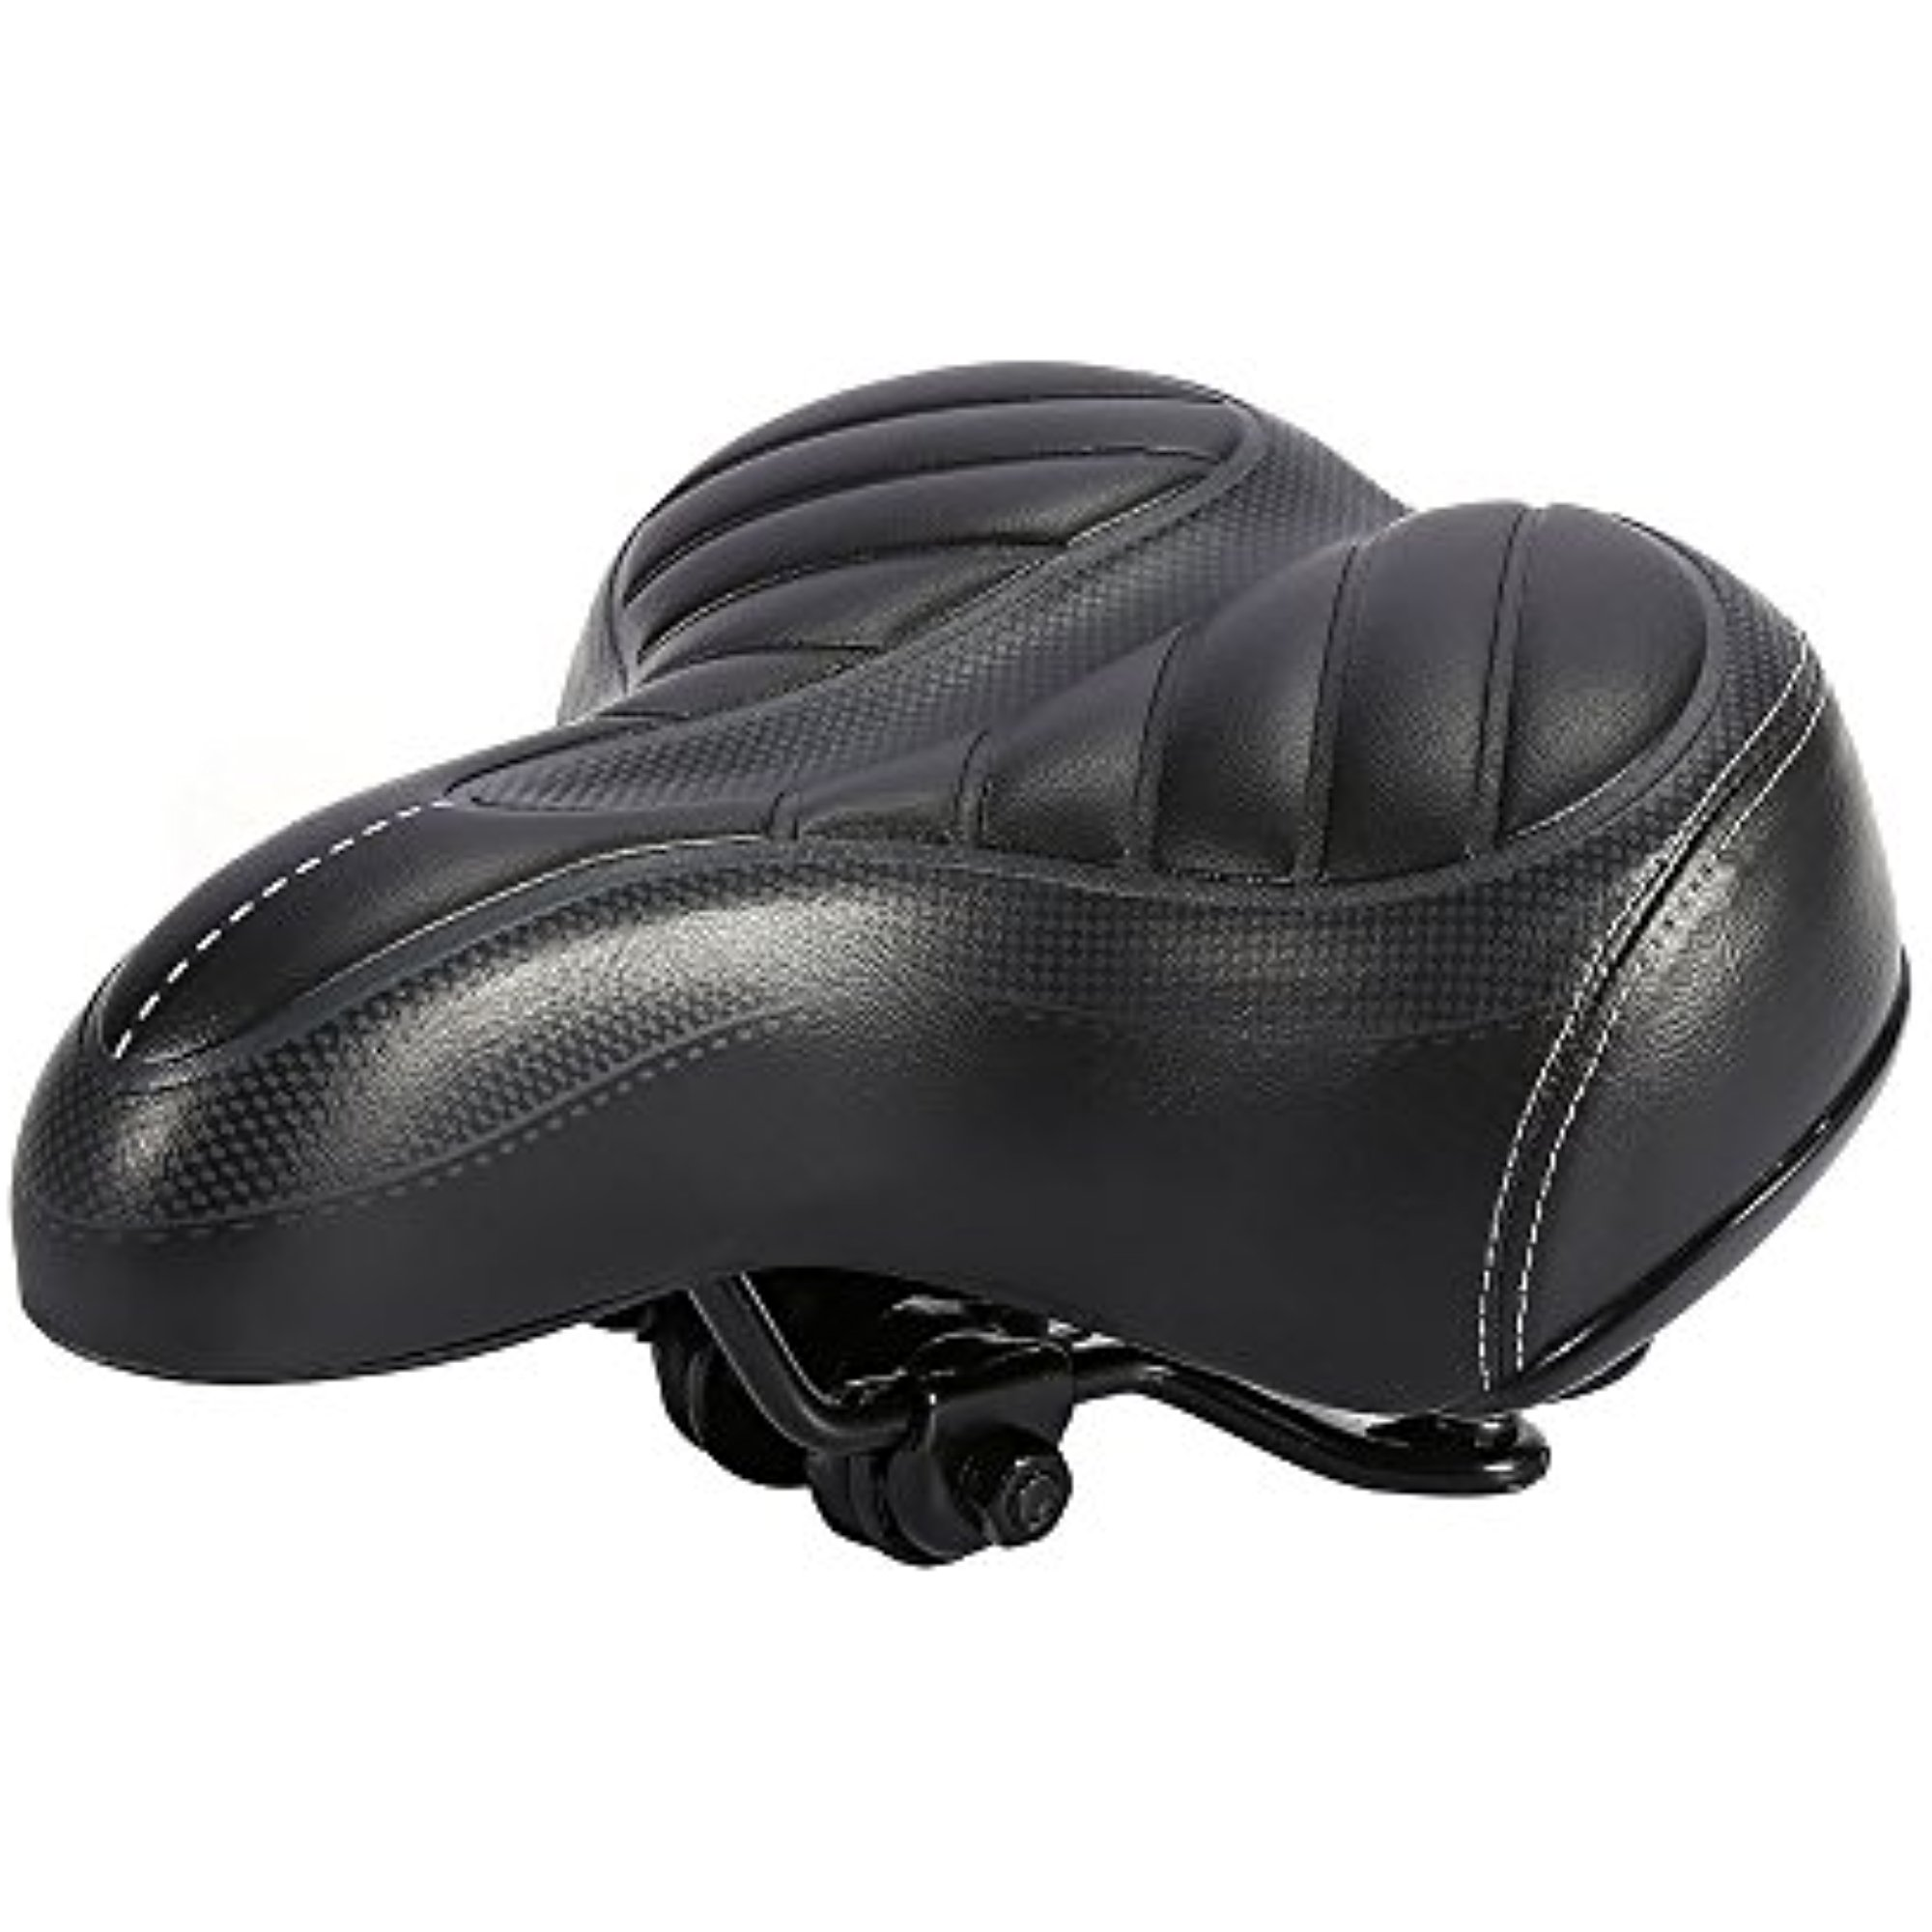 Estink Bike Saddle Seat Cushion,Outdoor Wide Big Bum Sprung Men Bike Bicycle Gel Cushion Comfort Saddle Seat